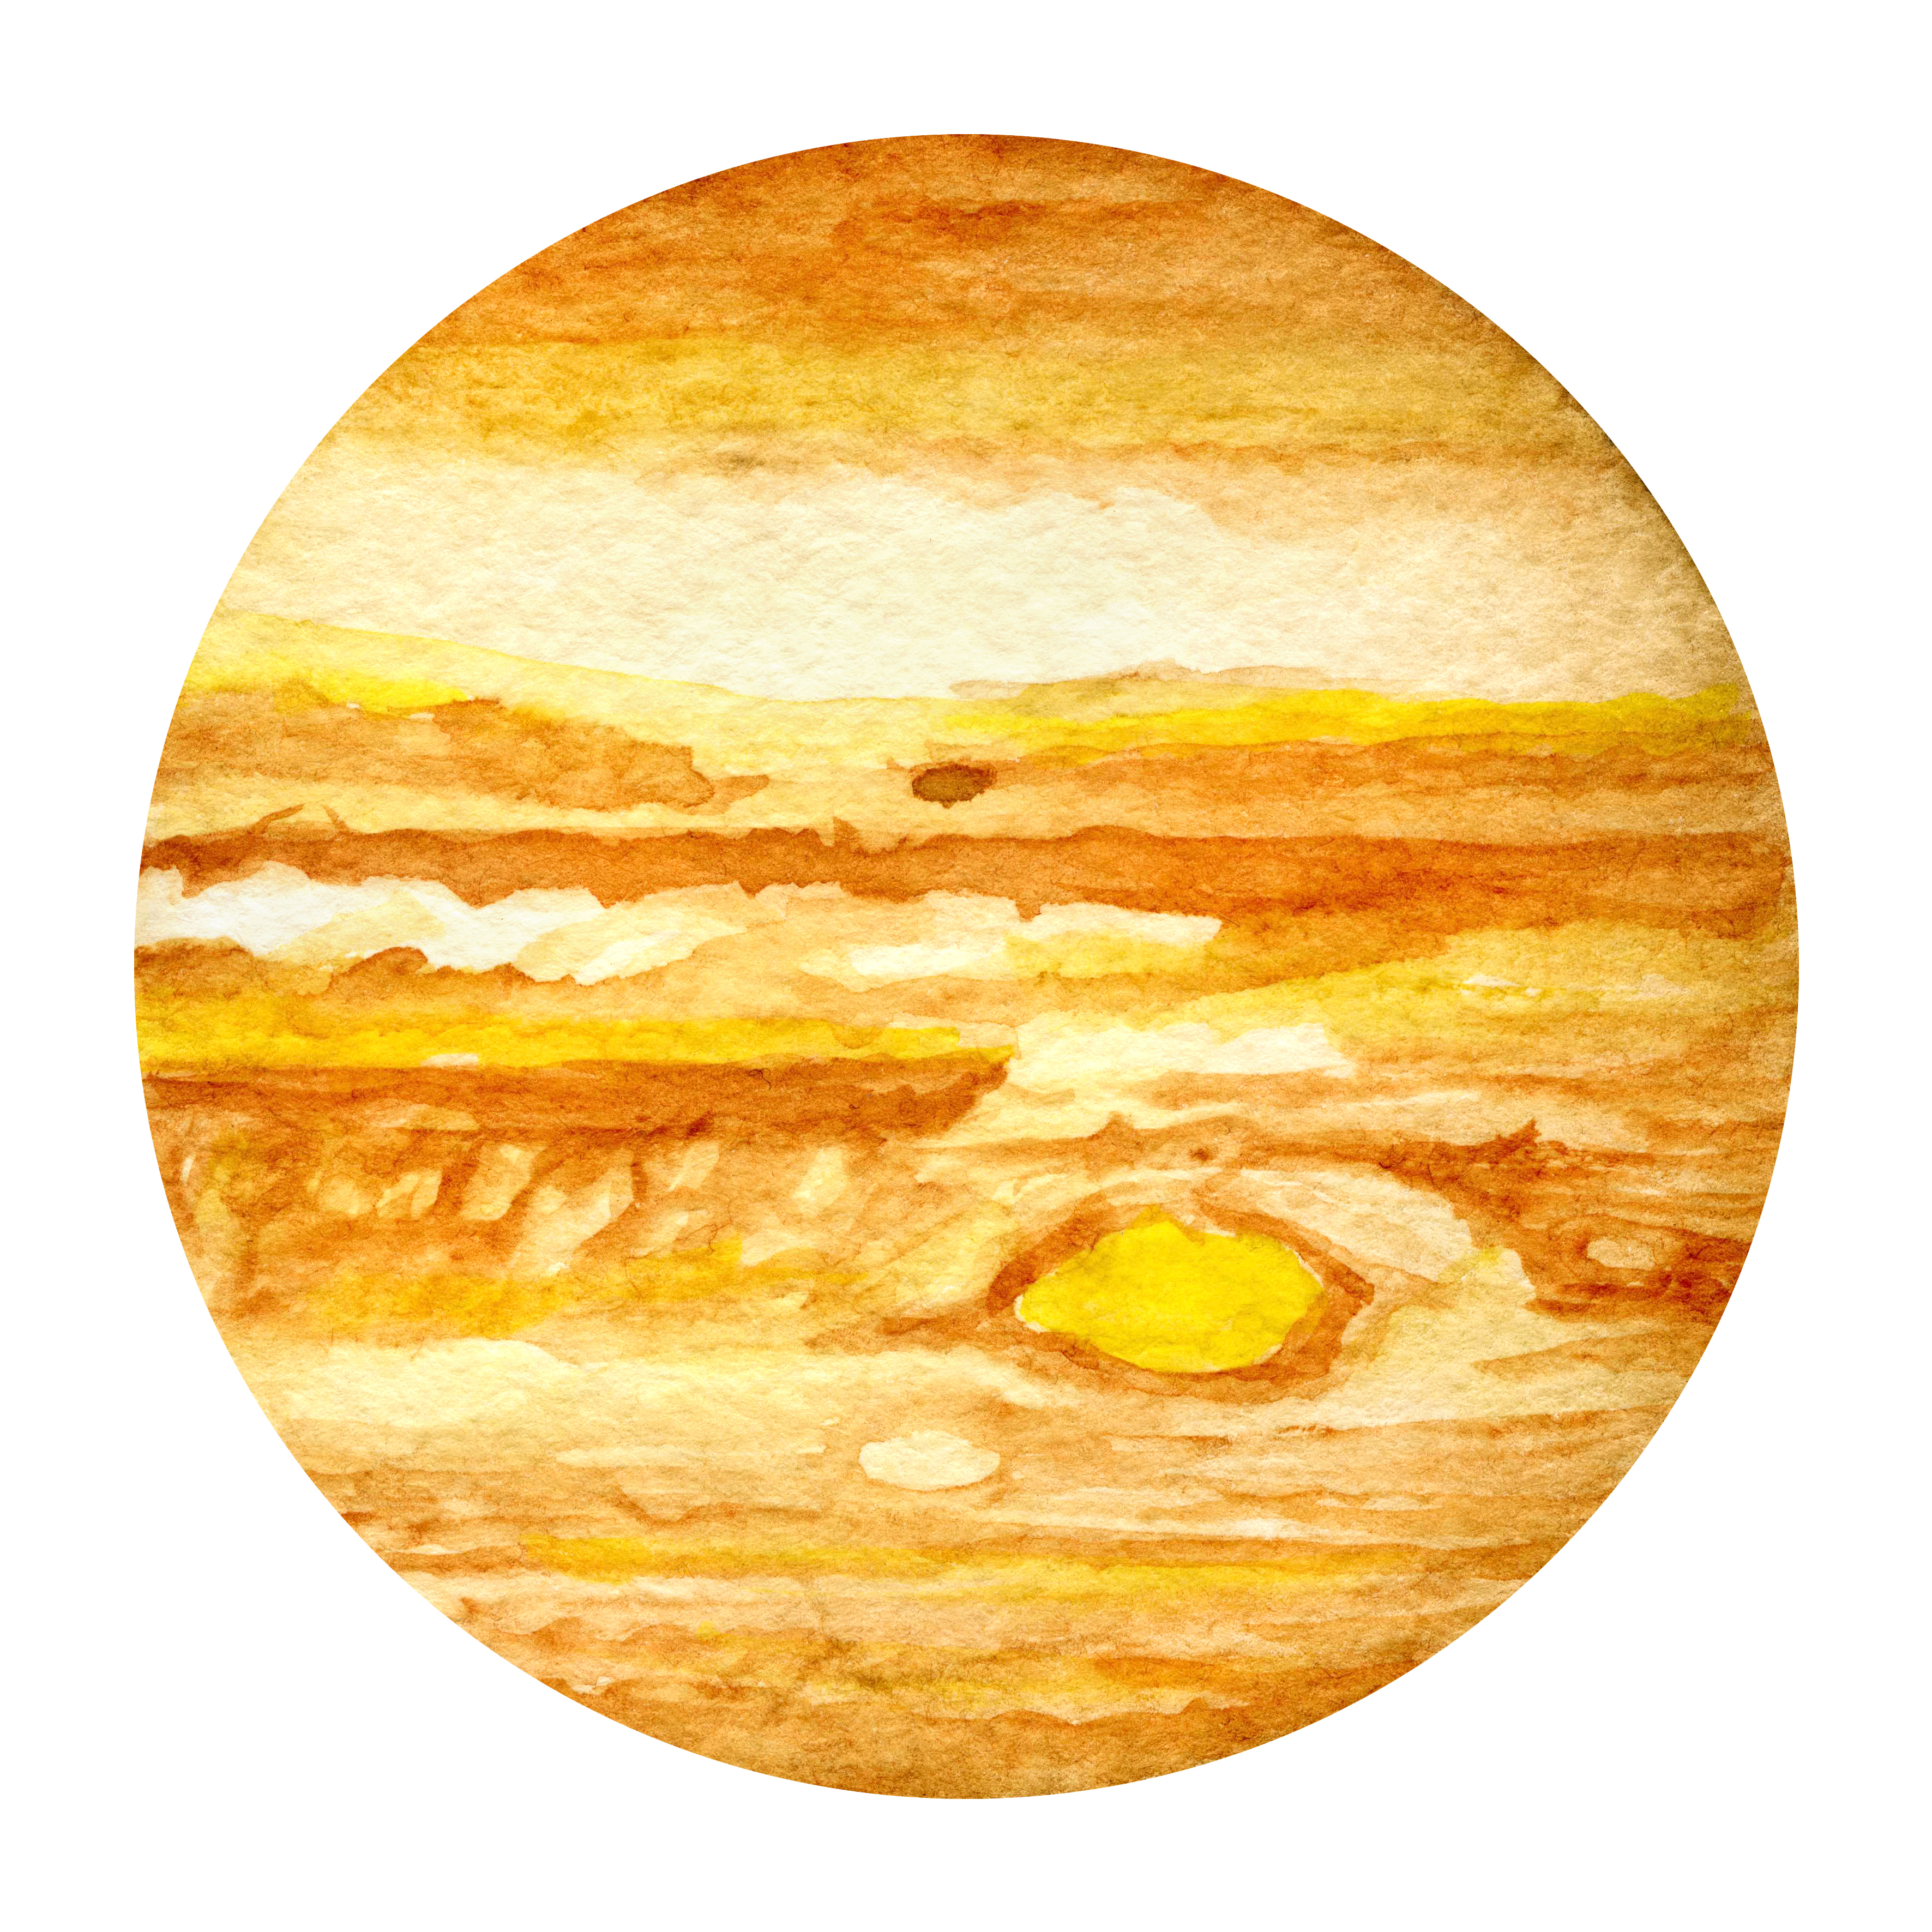 Jupiter is at opposition tomorrow and we have front row seats to the show